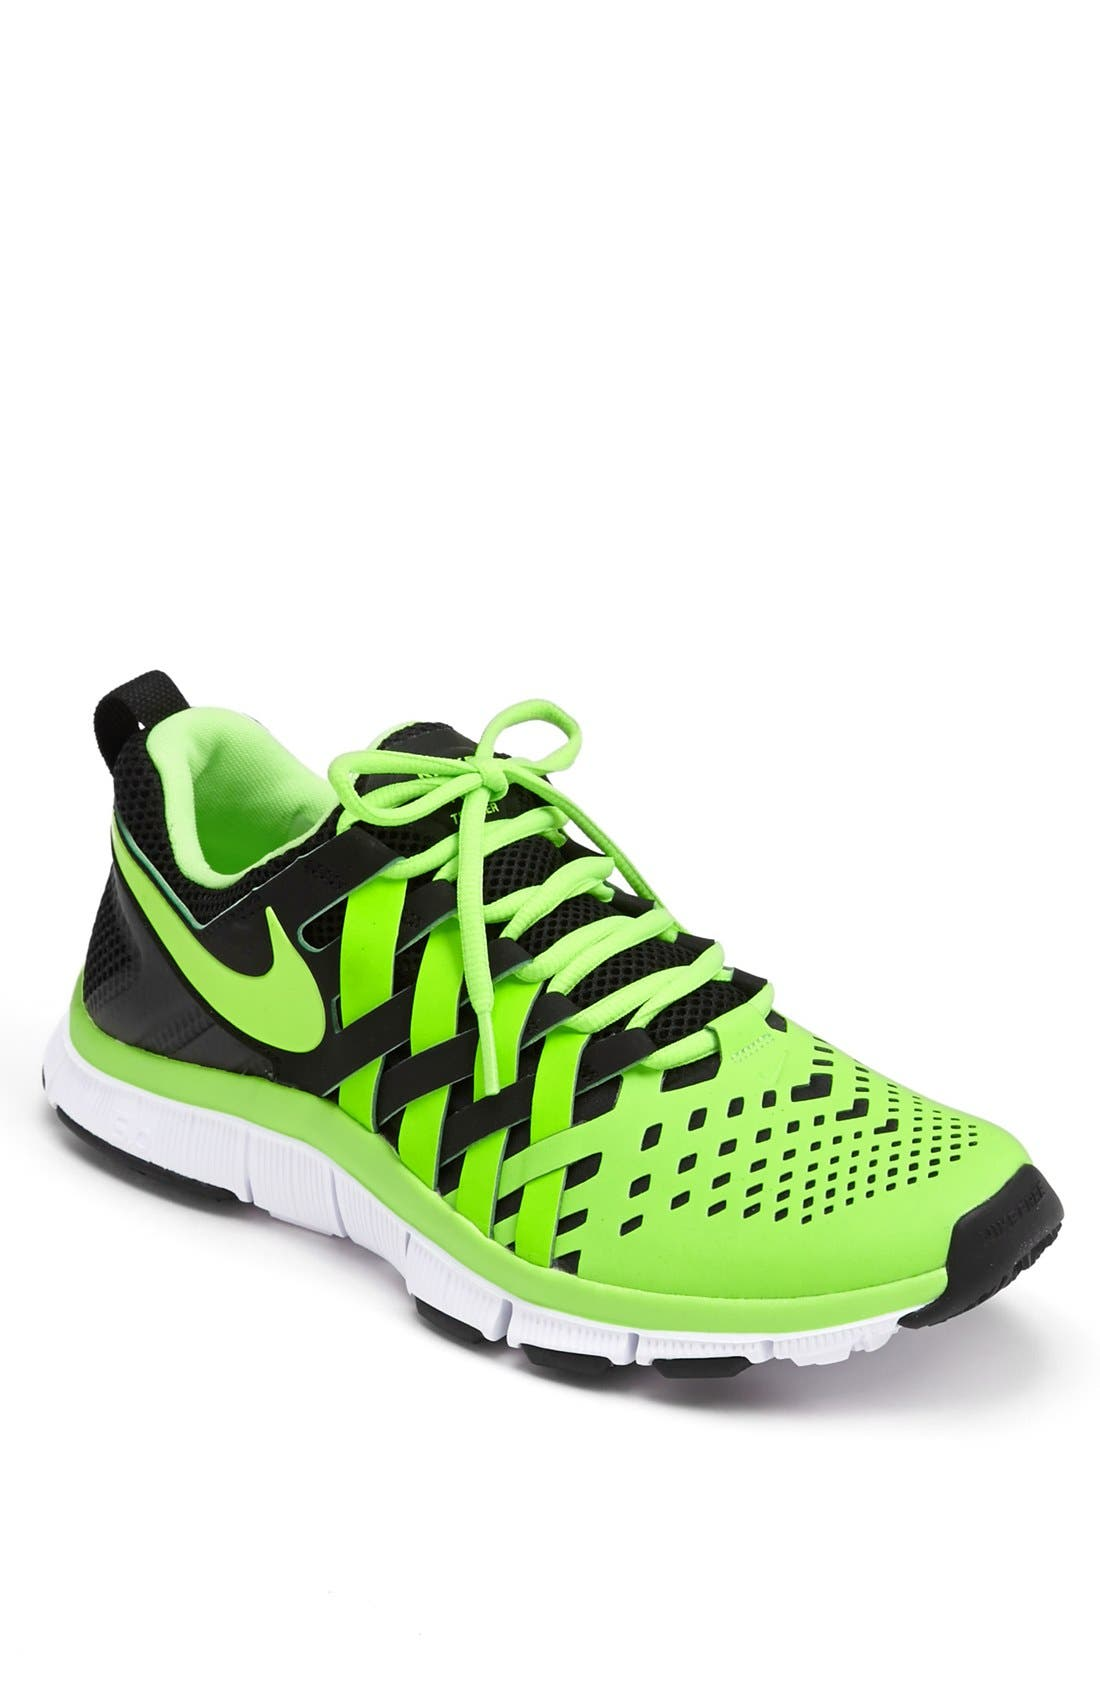 Alternate Image 1 Selected - Nike 'Free Trainer 5.0' Training Shoe (Men)